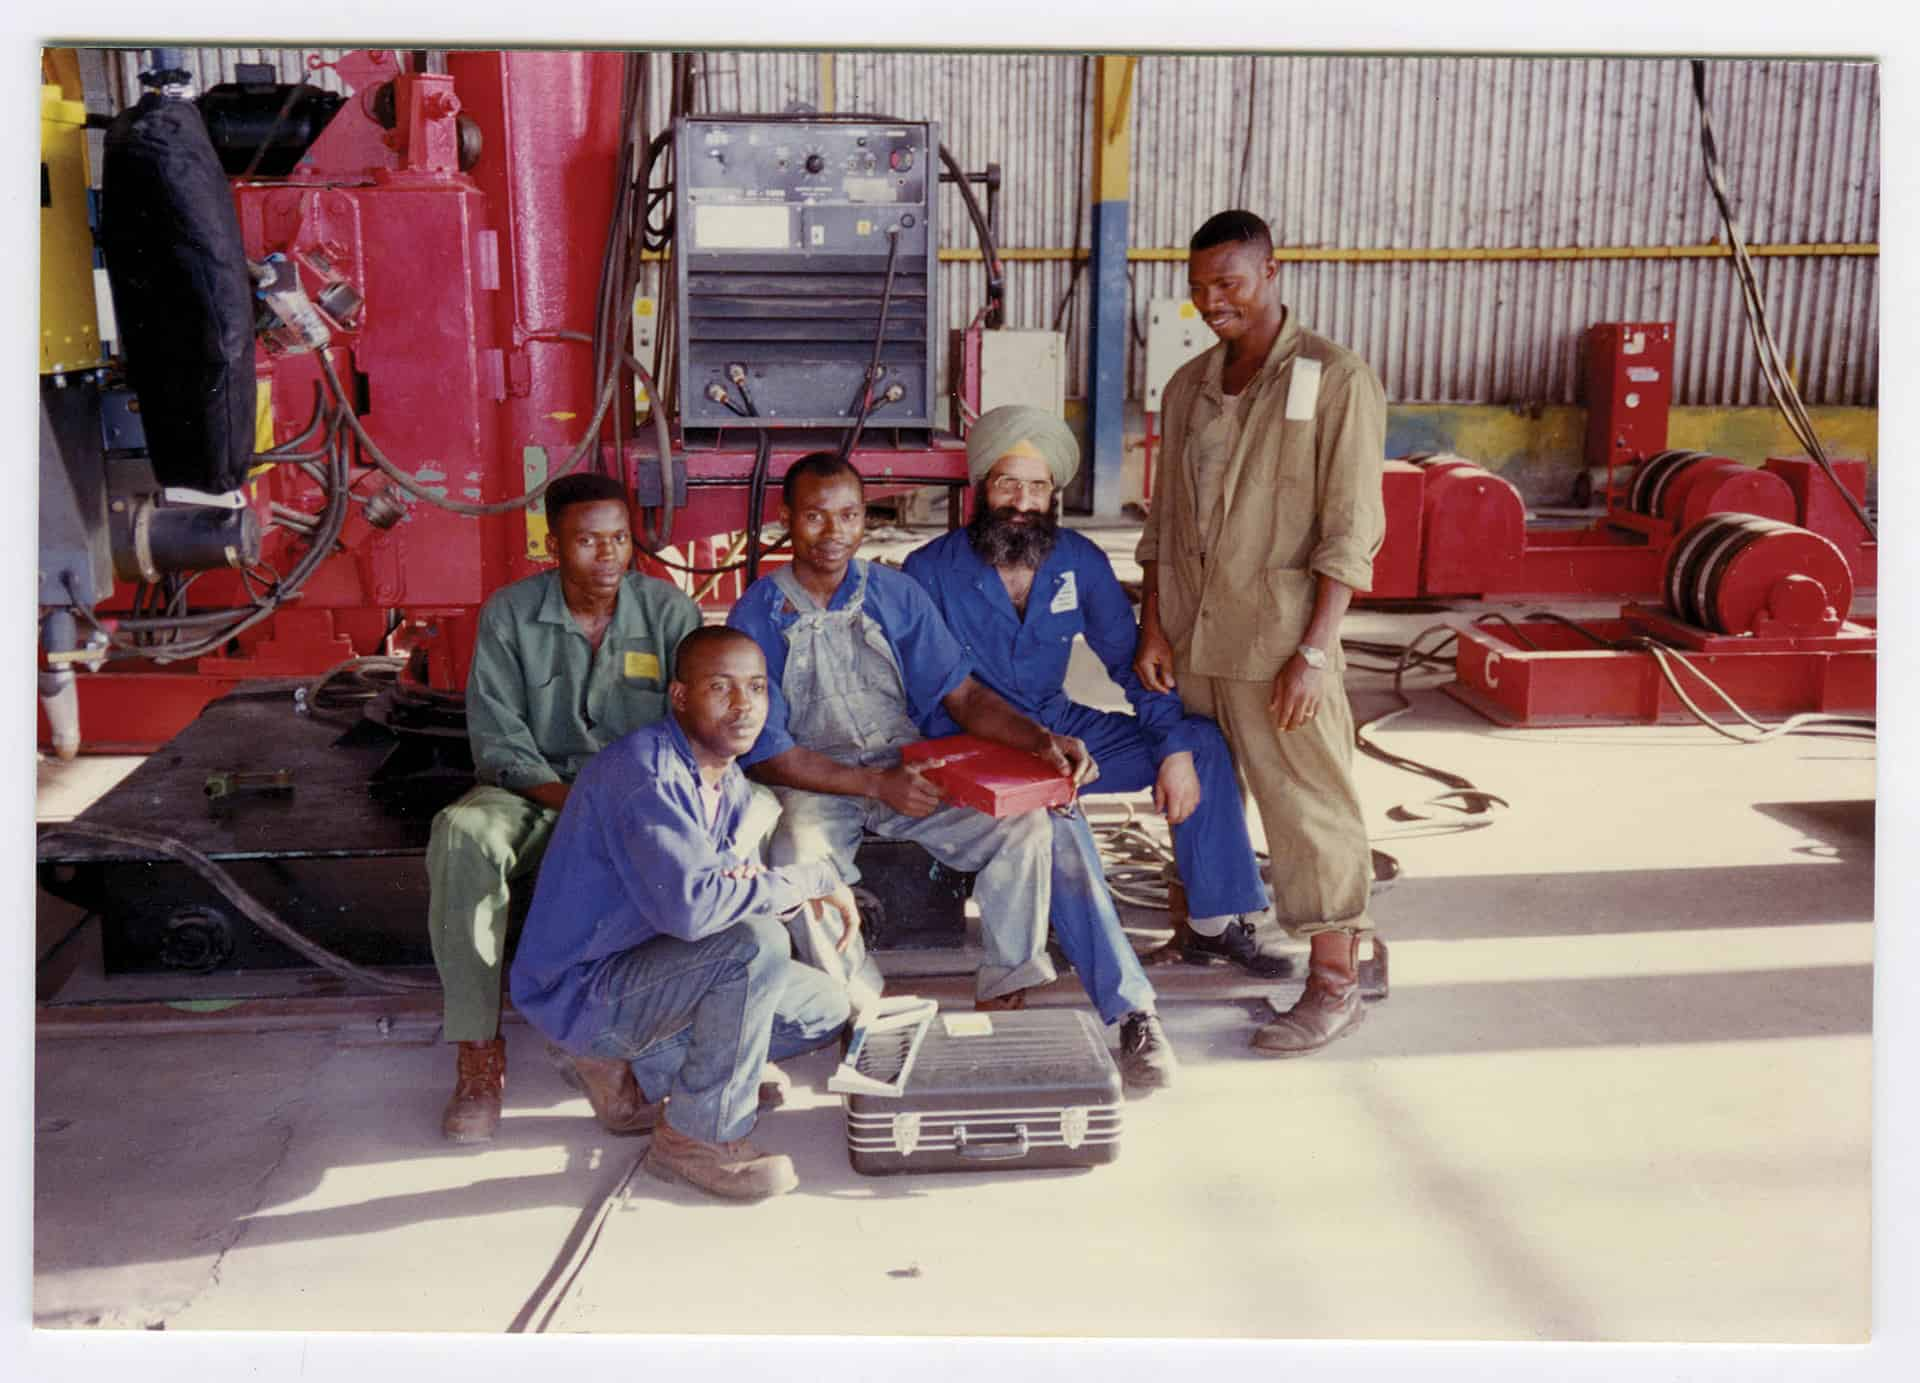 Nirmal Singh with workers in Lagos, Nigeria,c1991. Nirmal trained workers to weld for vessel manufacture